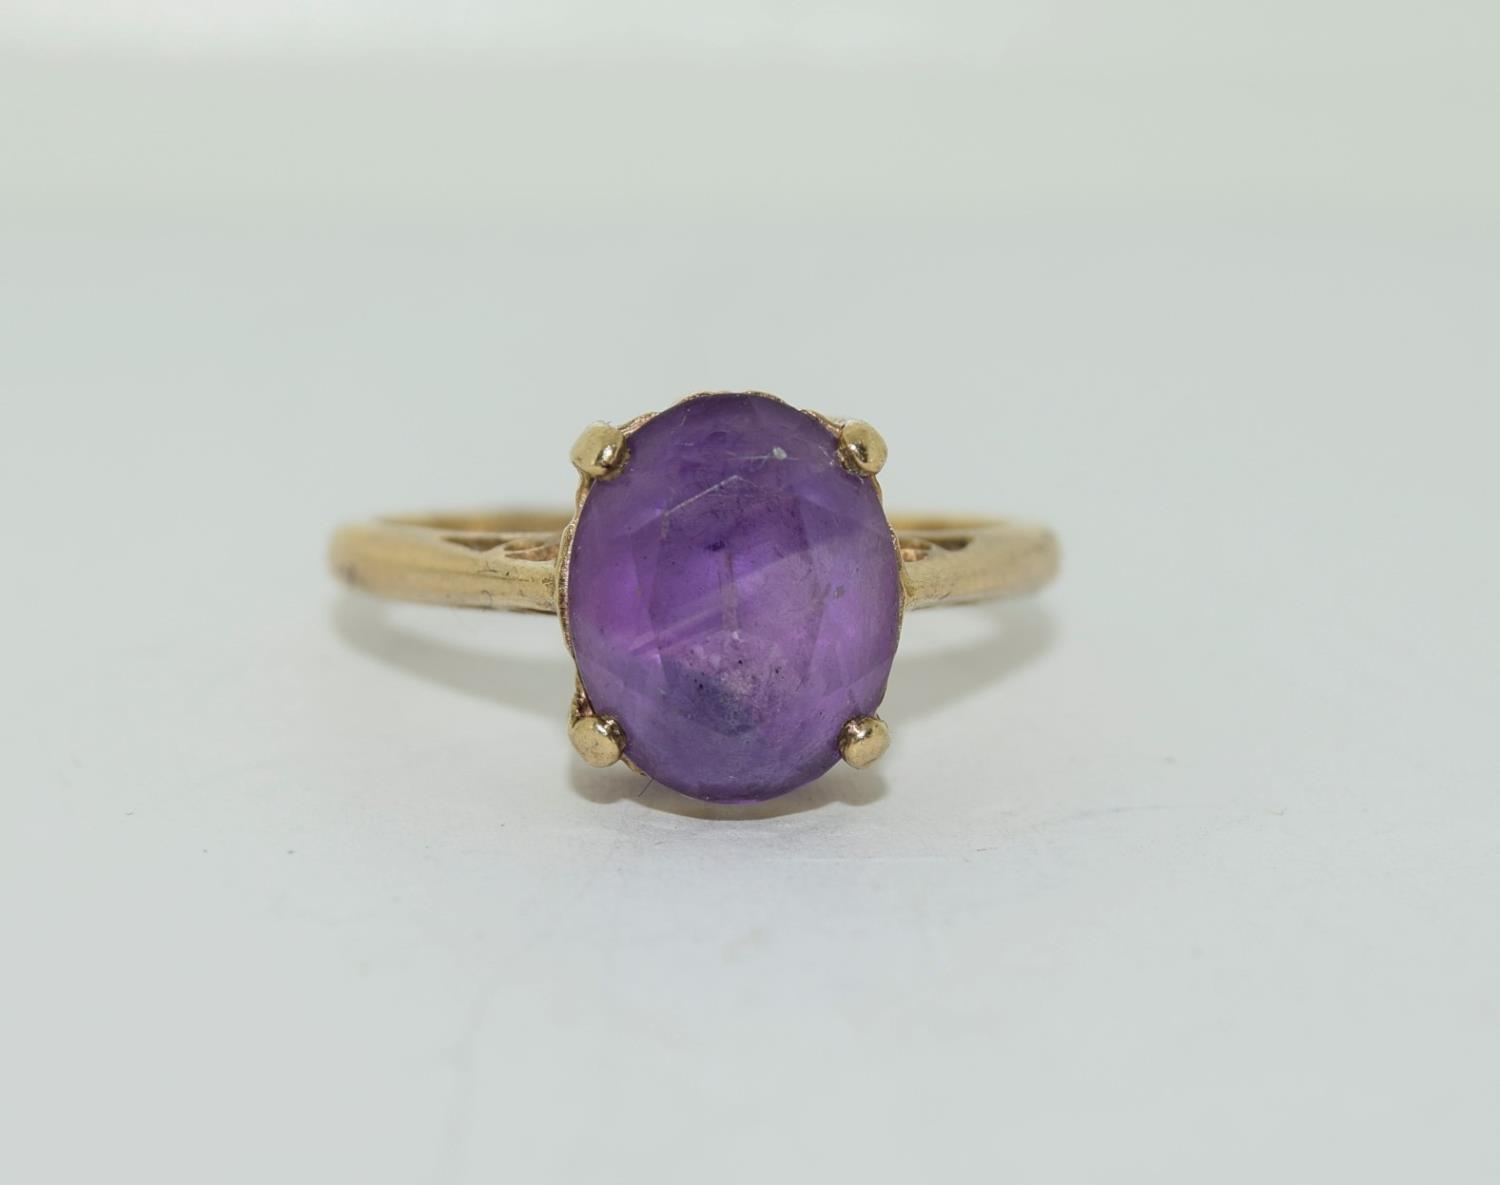 9ct gold ladies Amethyst ring size N - Image 2 of 12